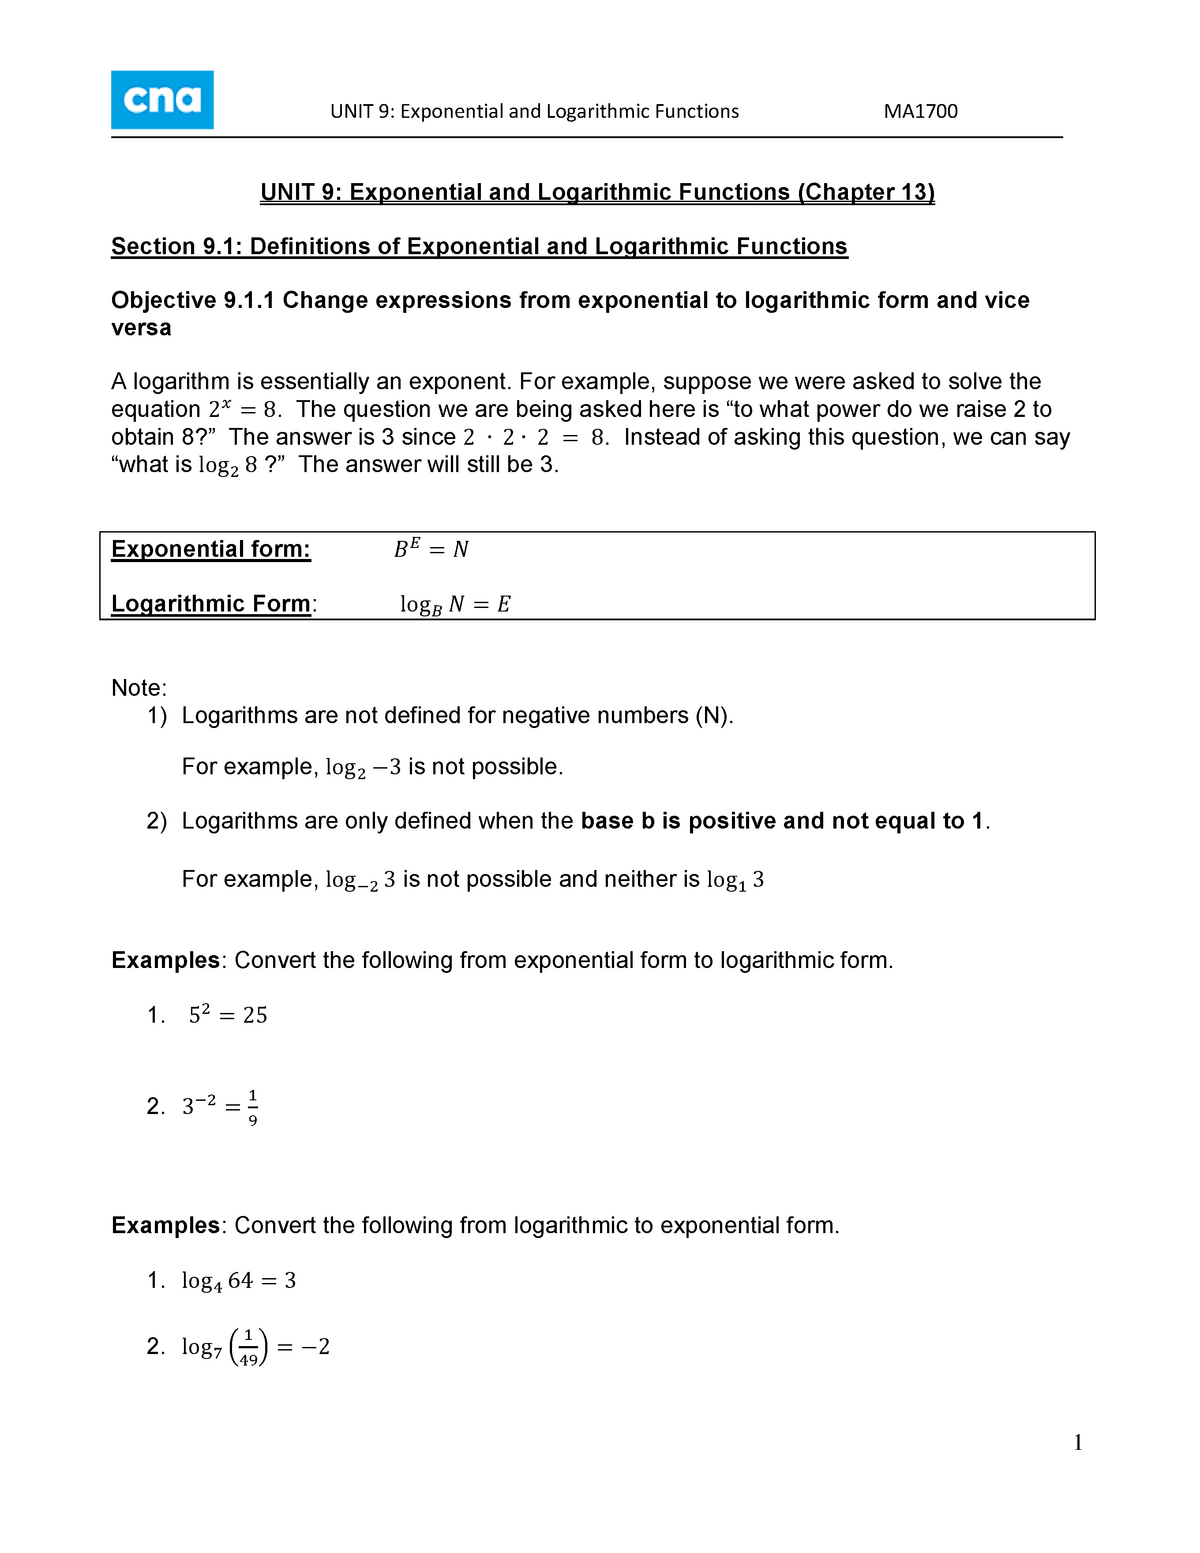 MA1700 Notes Unit 9 Exponentials and Logarithms - MA1700